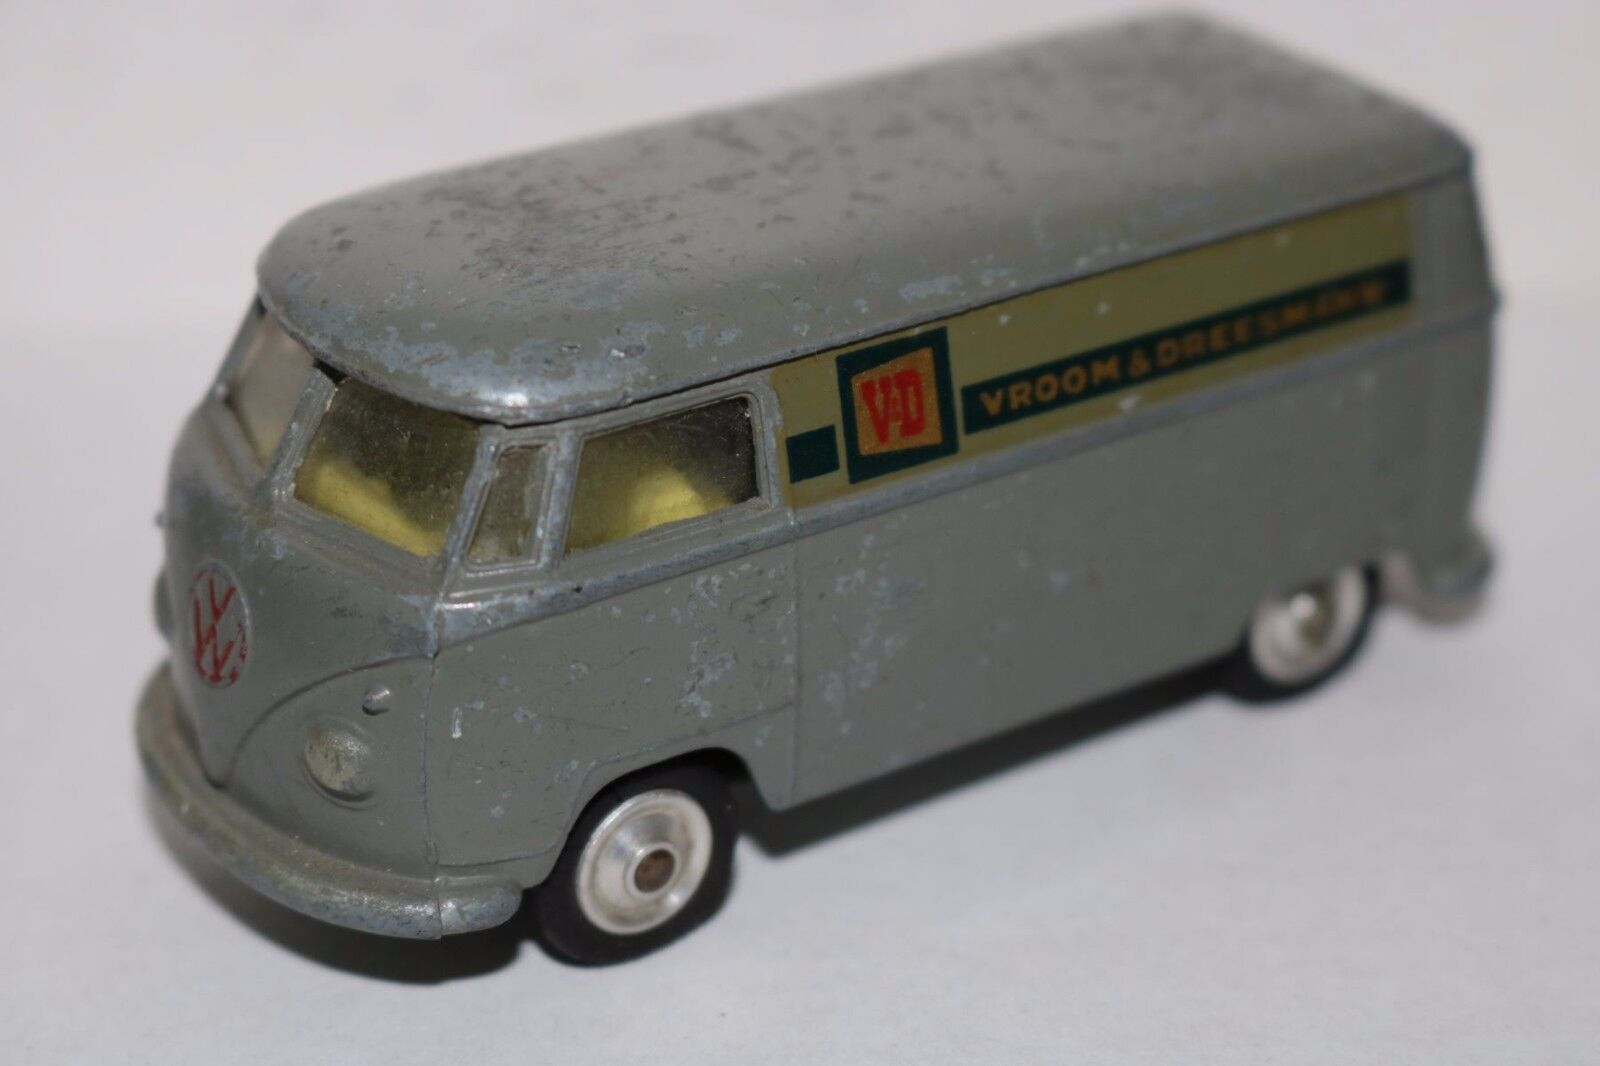 Corgi Toys Volkswagen  V&D Vroom & Dreesmann  giallo interior very scarce model